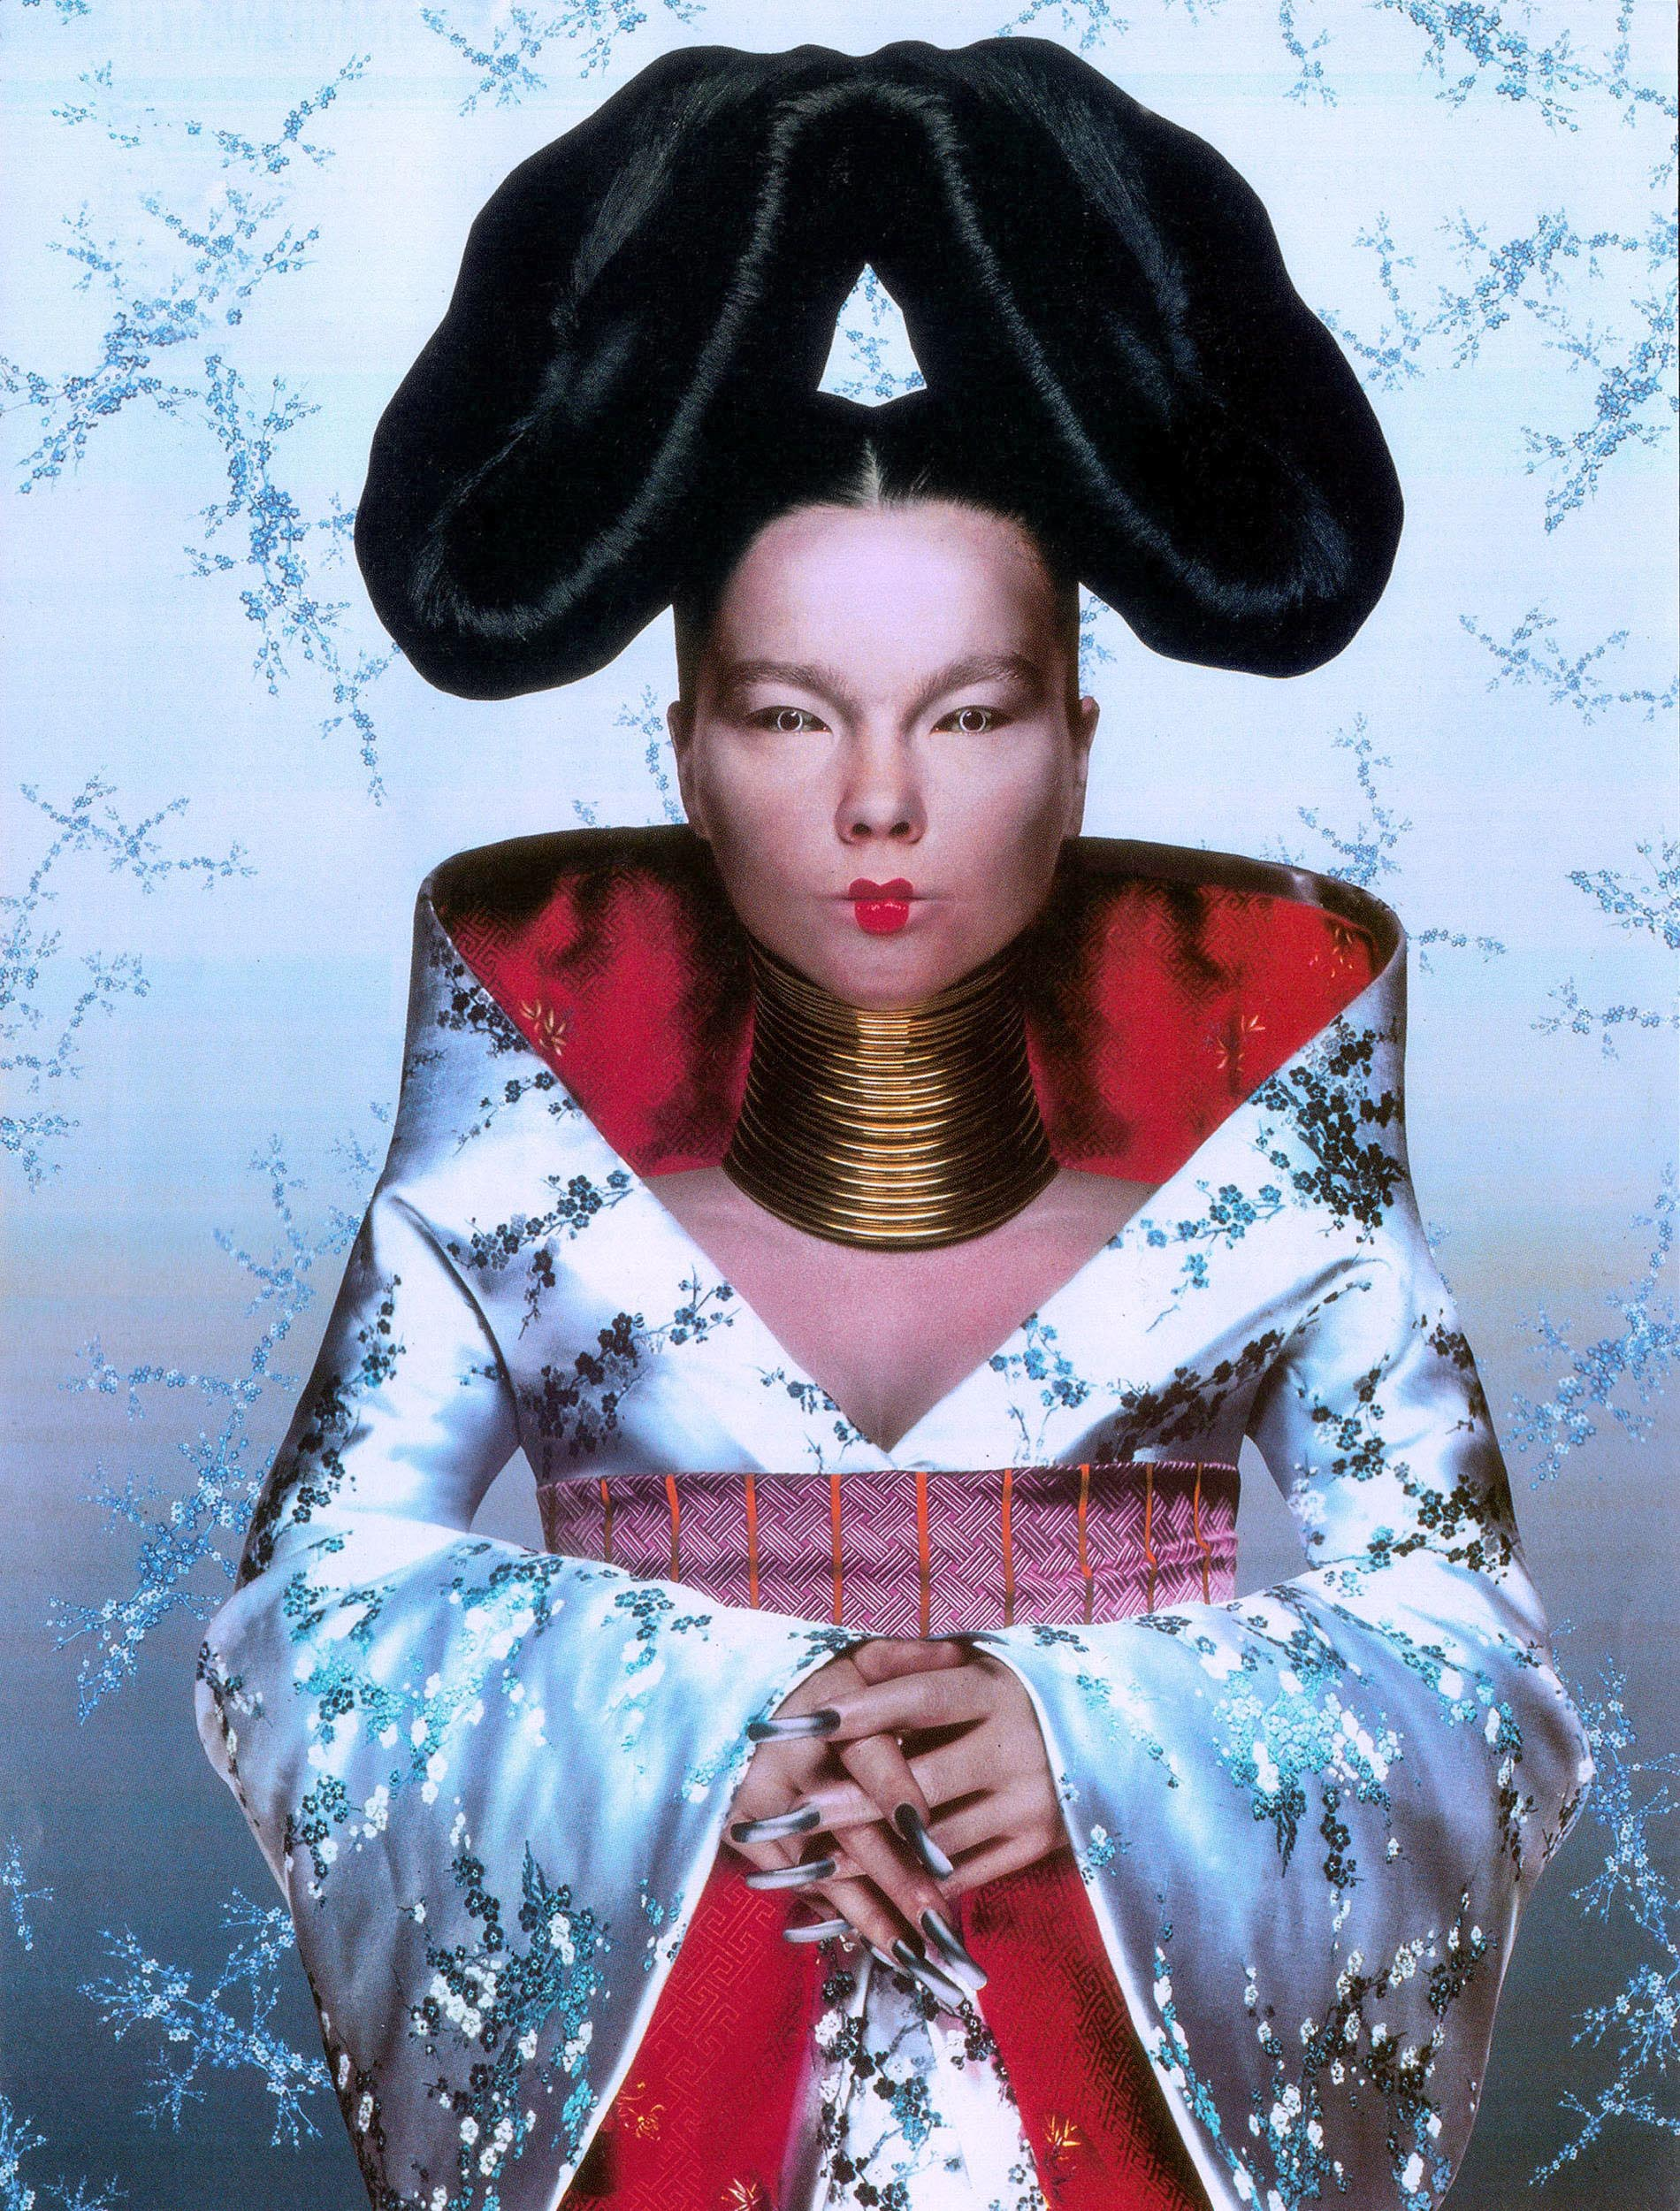 bjork-1997-nick-knight-homogenic-01